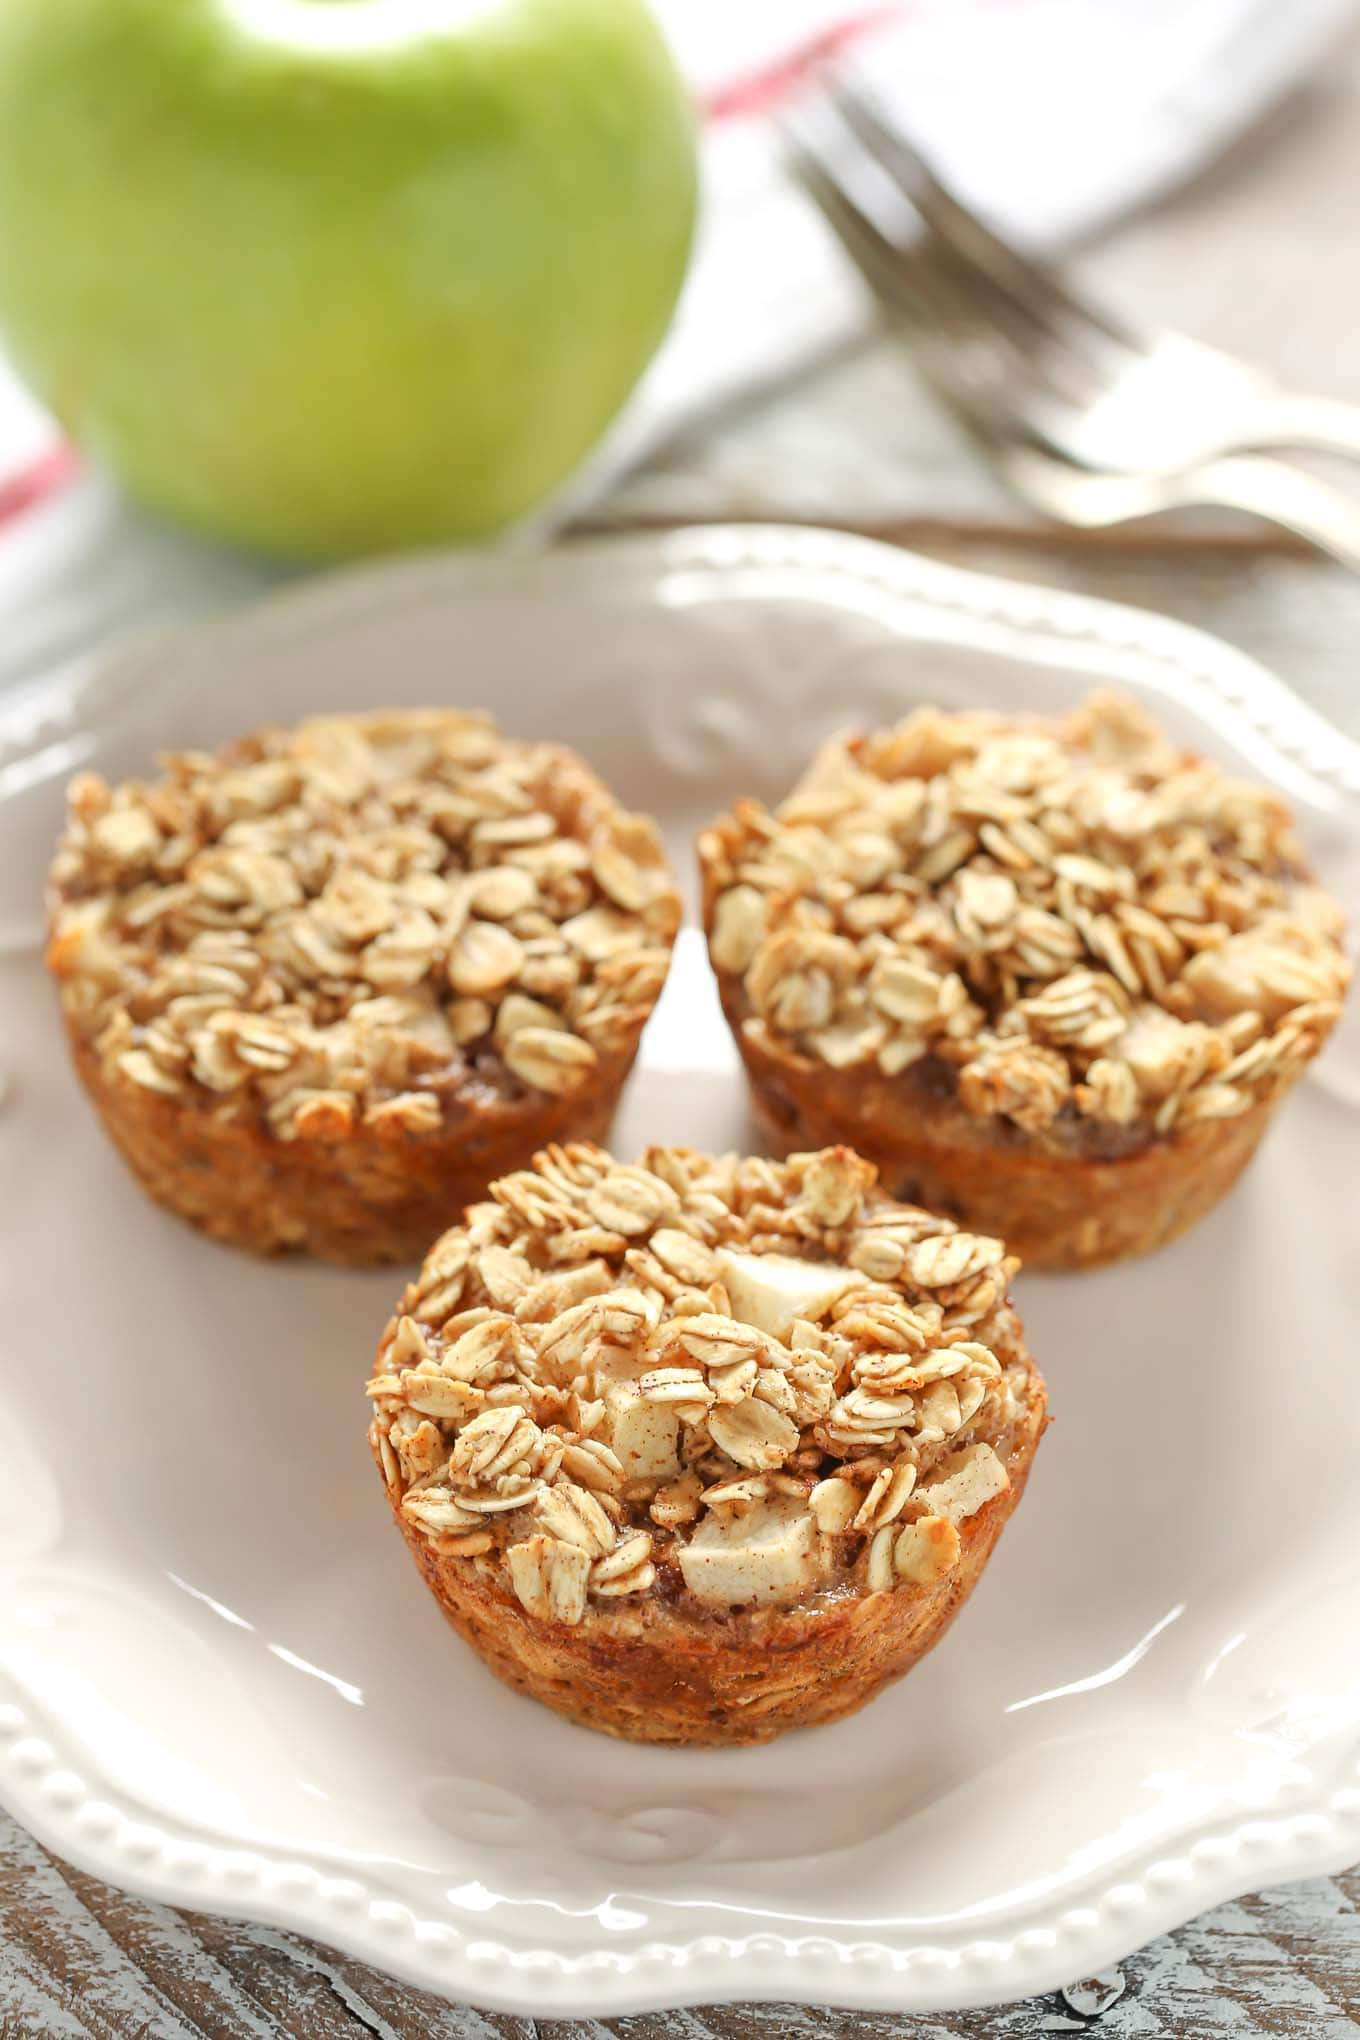 These easy Apple Cinnamon Baked Oatmeal Cups are perfect for an easy and healthy breakfast throughout the week!